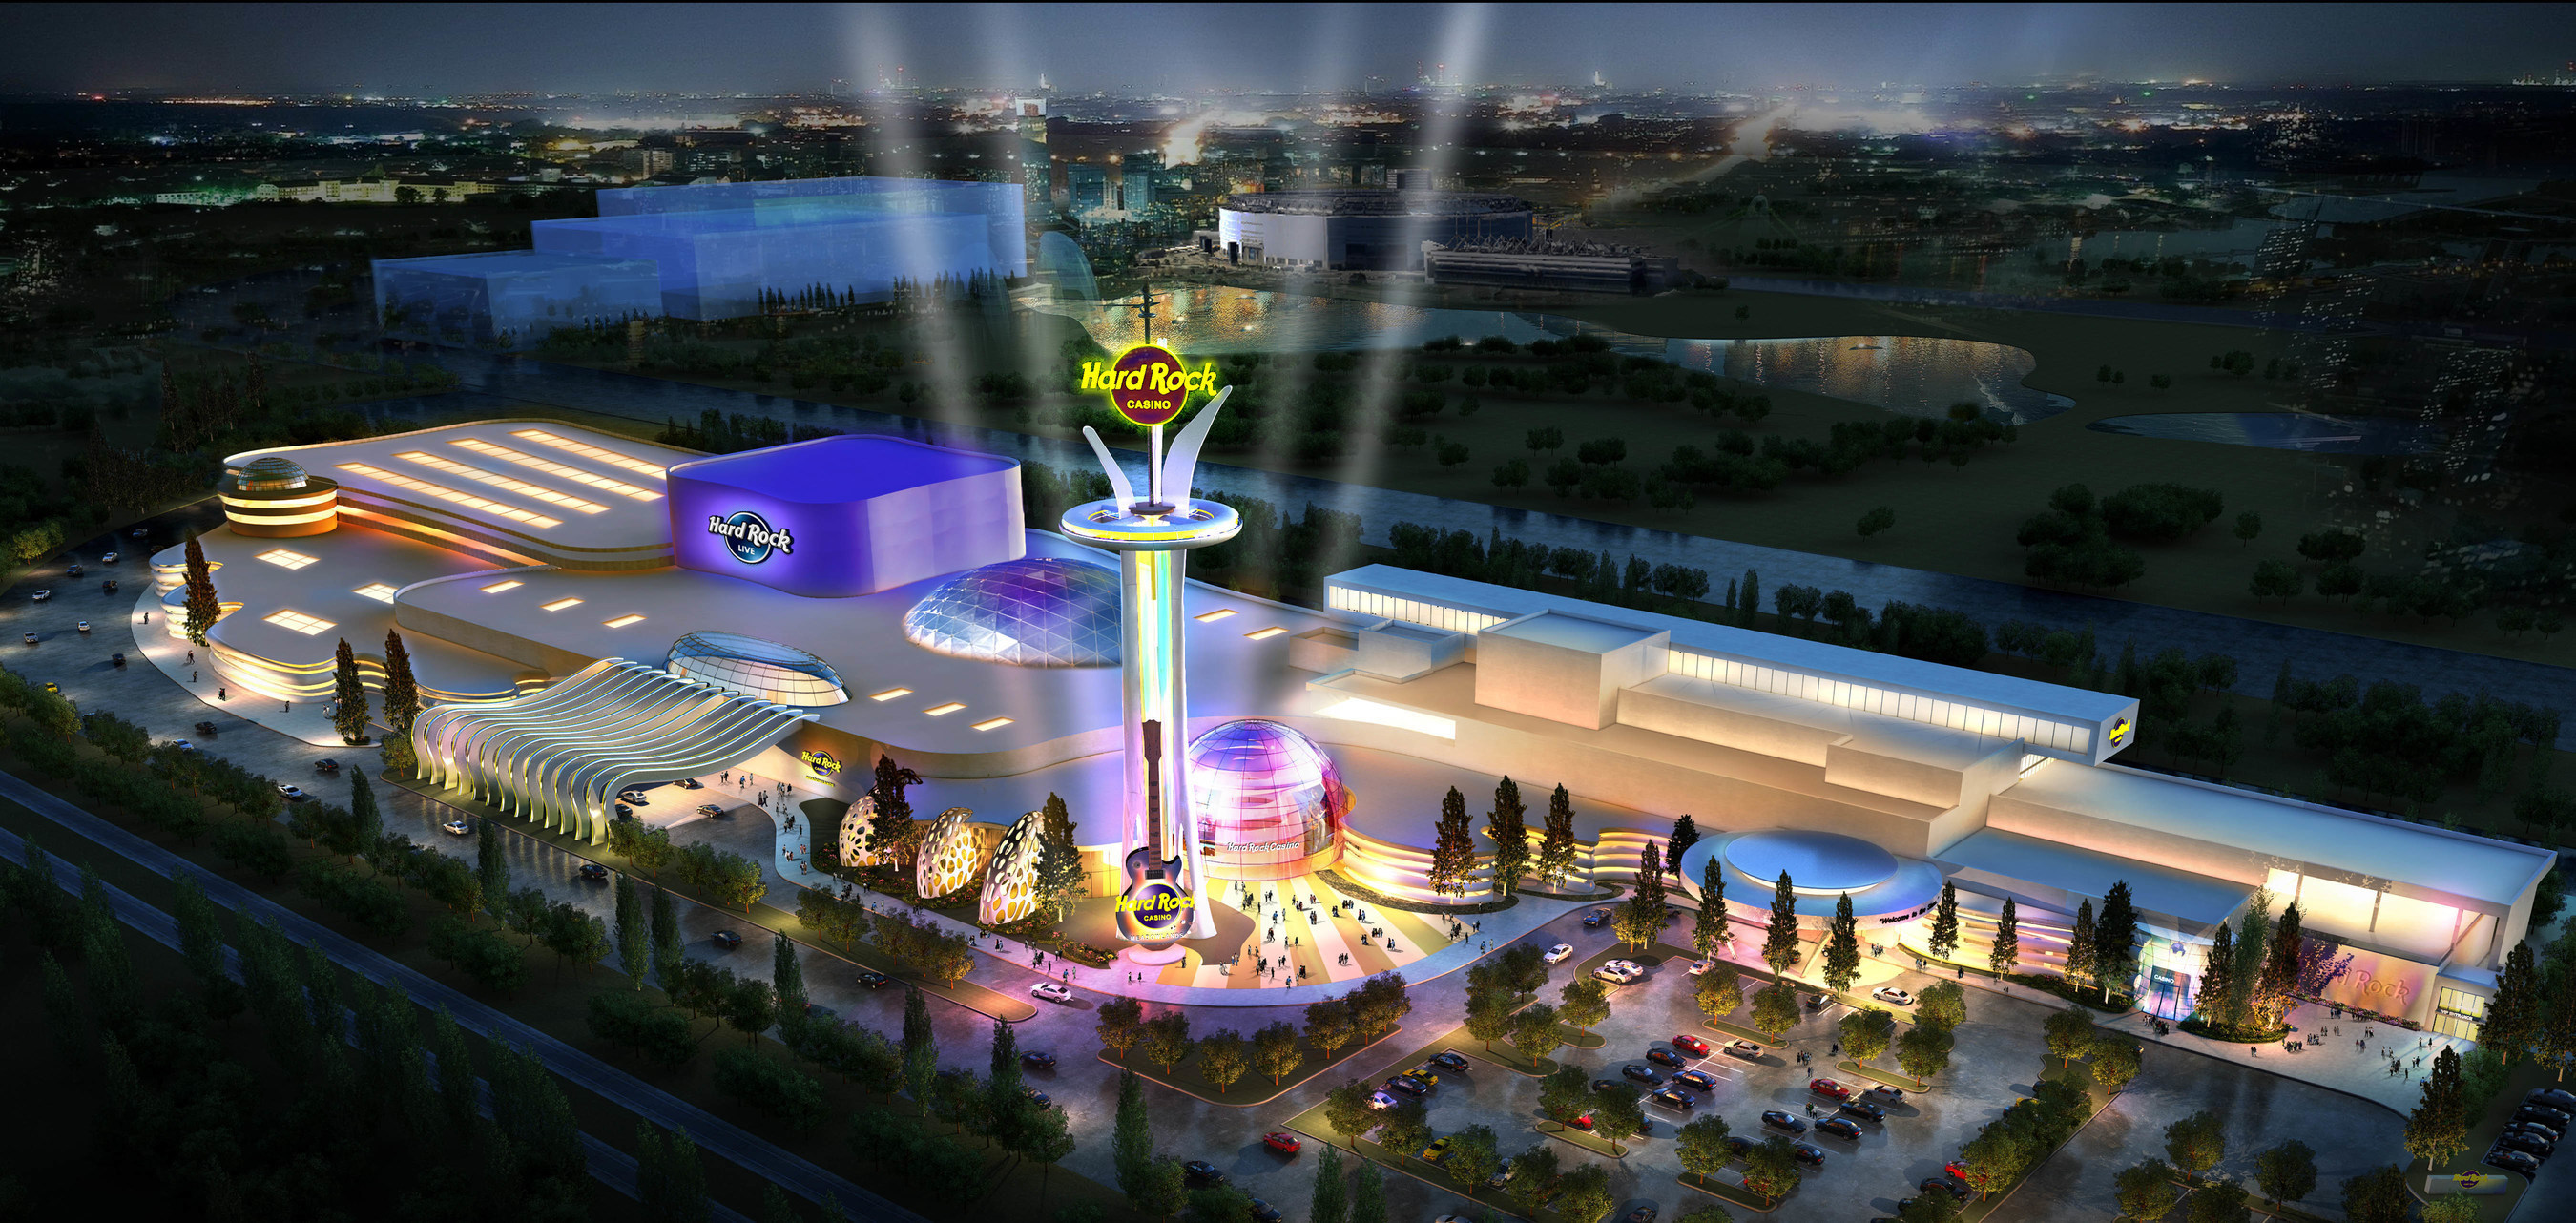 First visual of the proposed Hard Rock Casino at the Meadowlands in northern New Jersey.